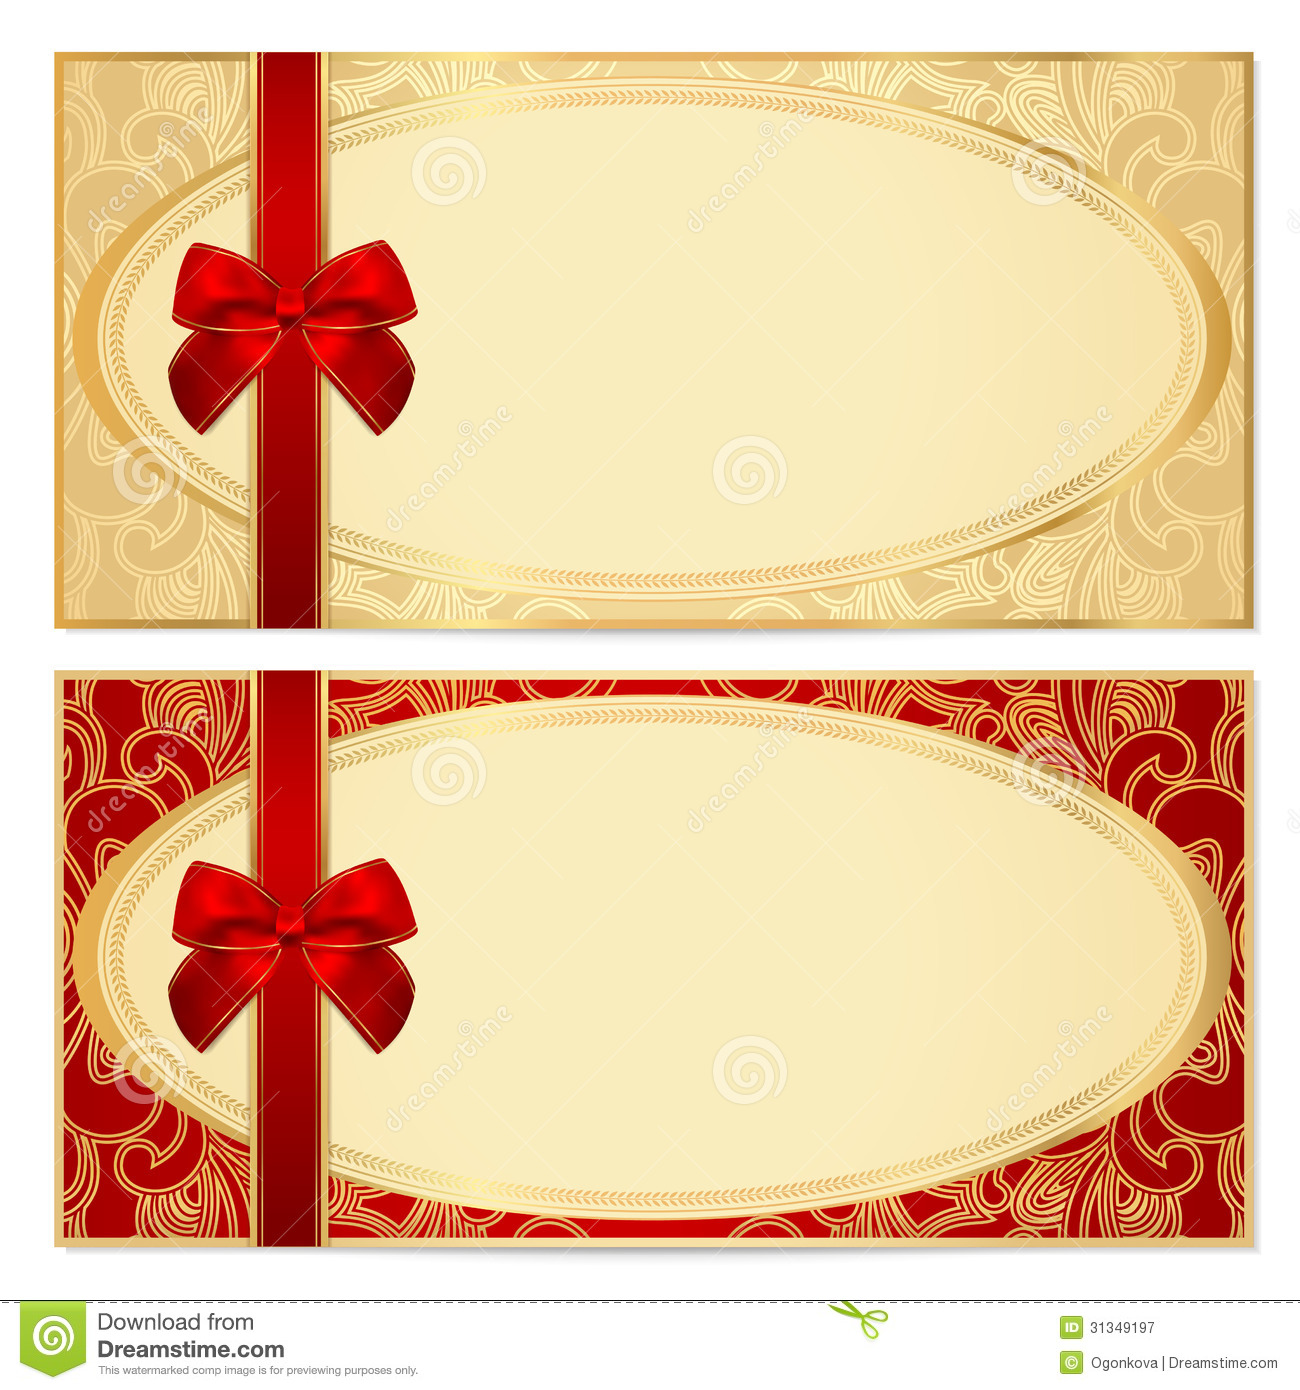 gift certificate voucher template bow pattern royalty gift certificate voucher template bow pattern